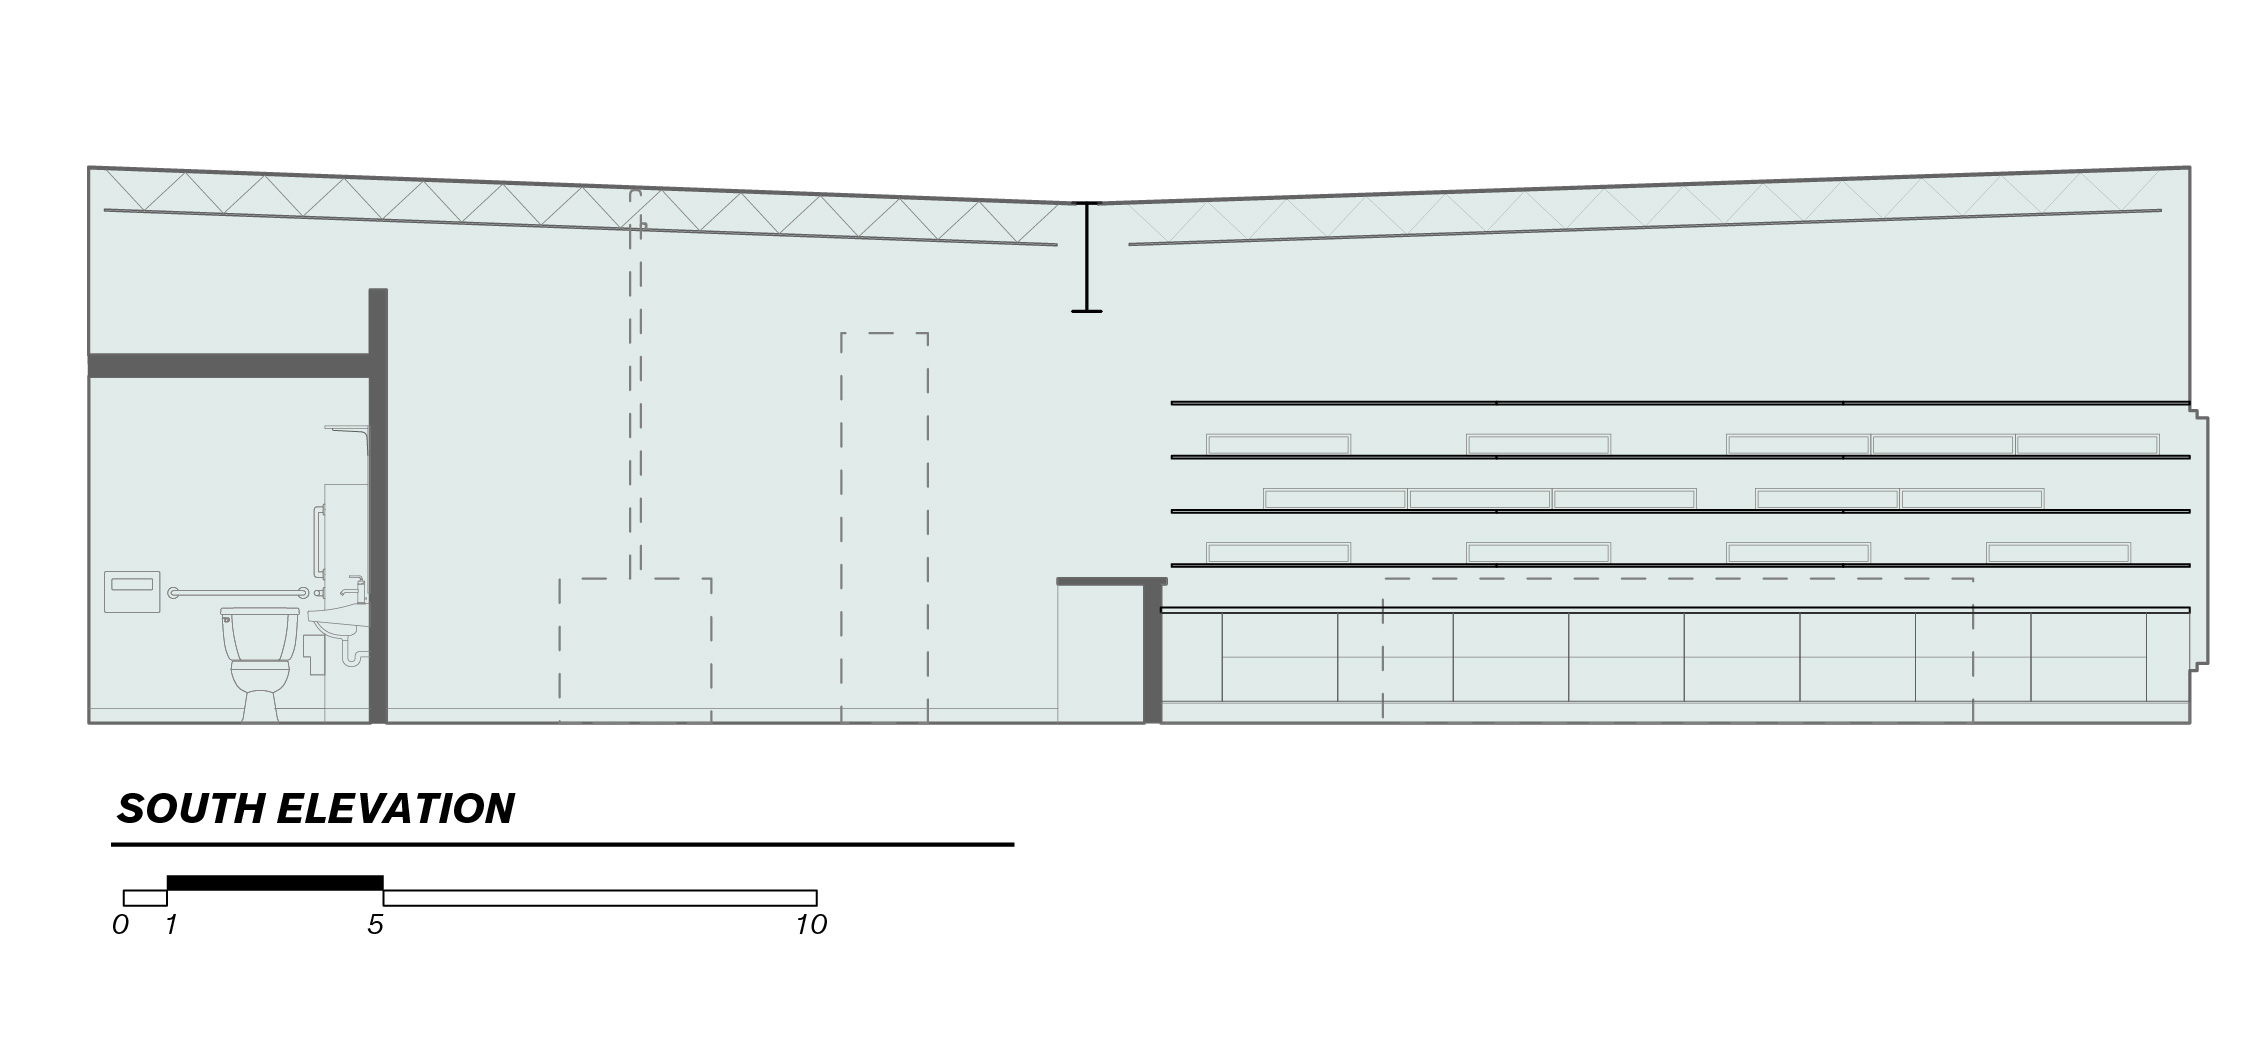 20181025_A2Pharmacy_Design Drawings [Converted]-03.jpg